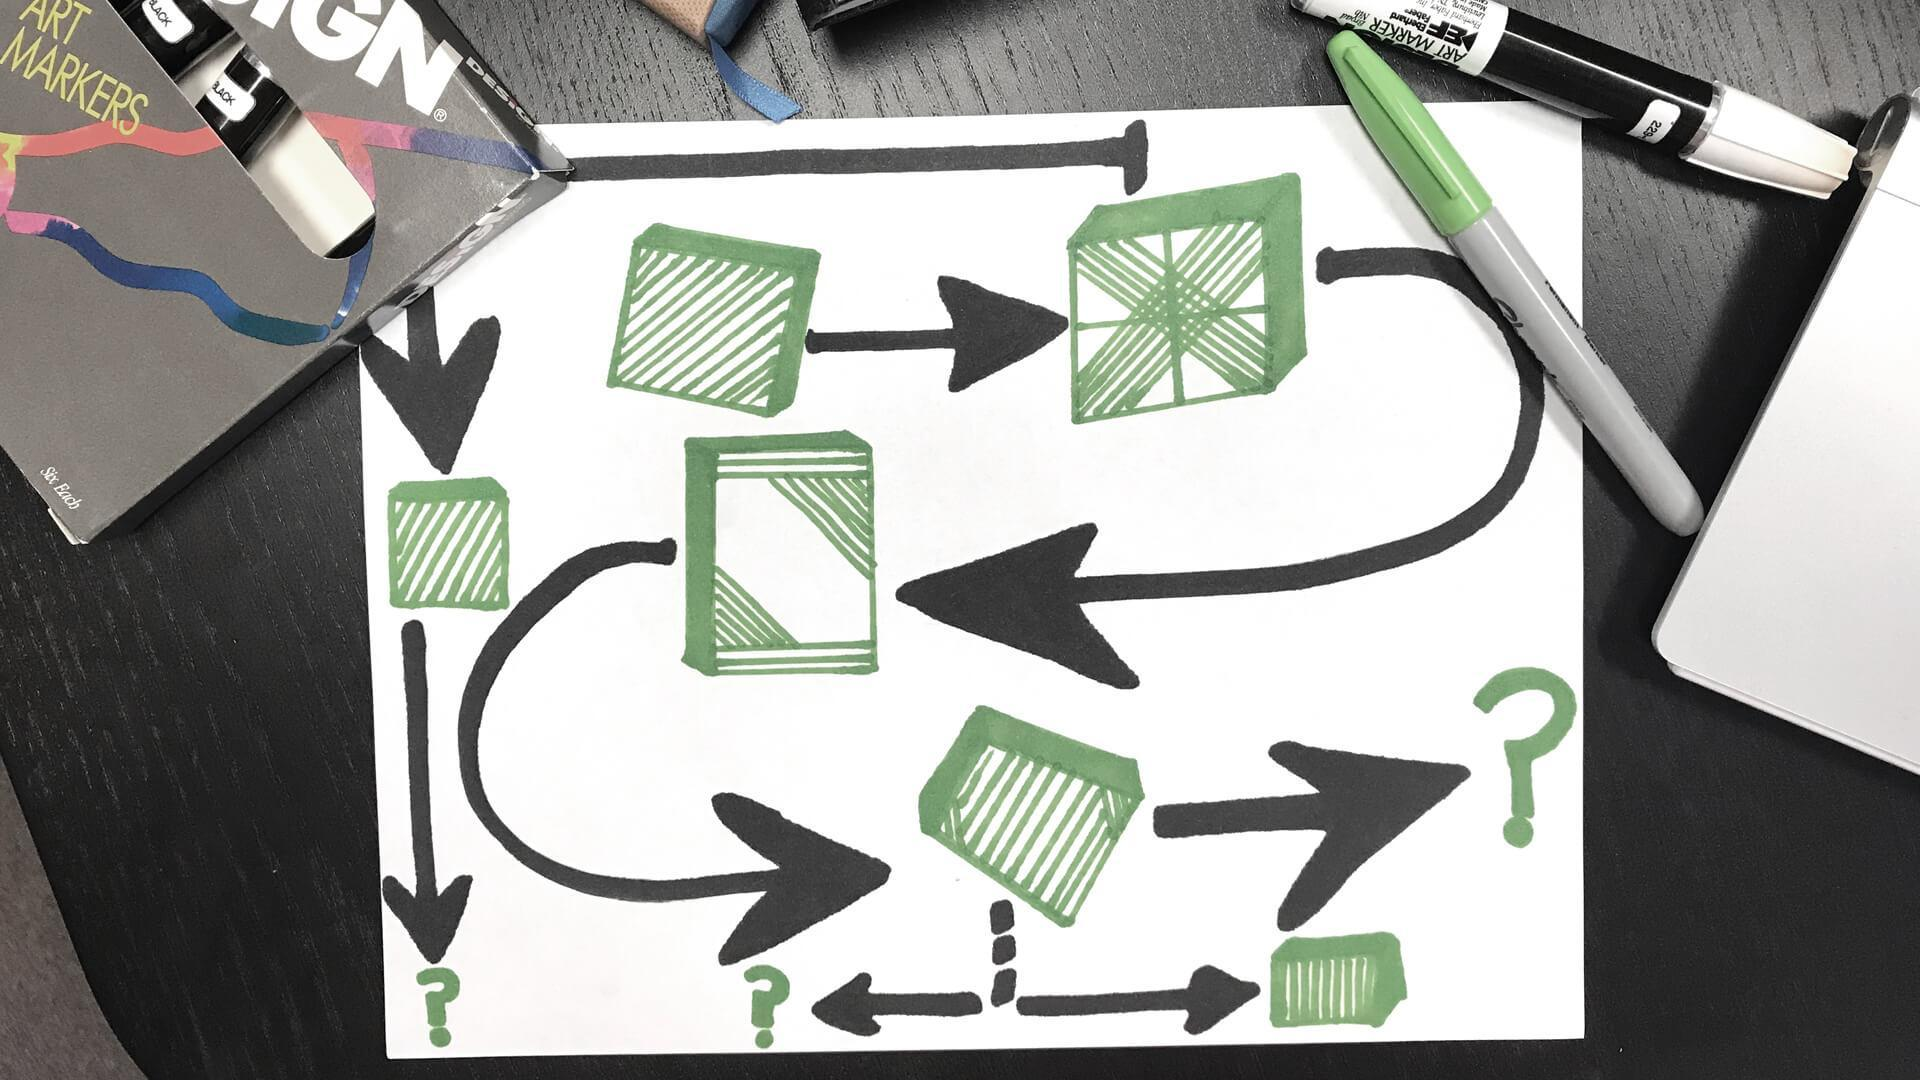 The Madness of the Method: Why Agency Process Matters